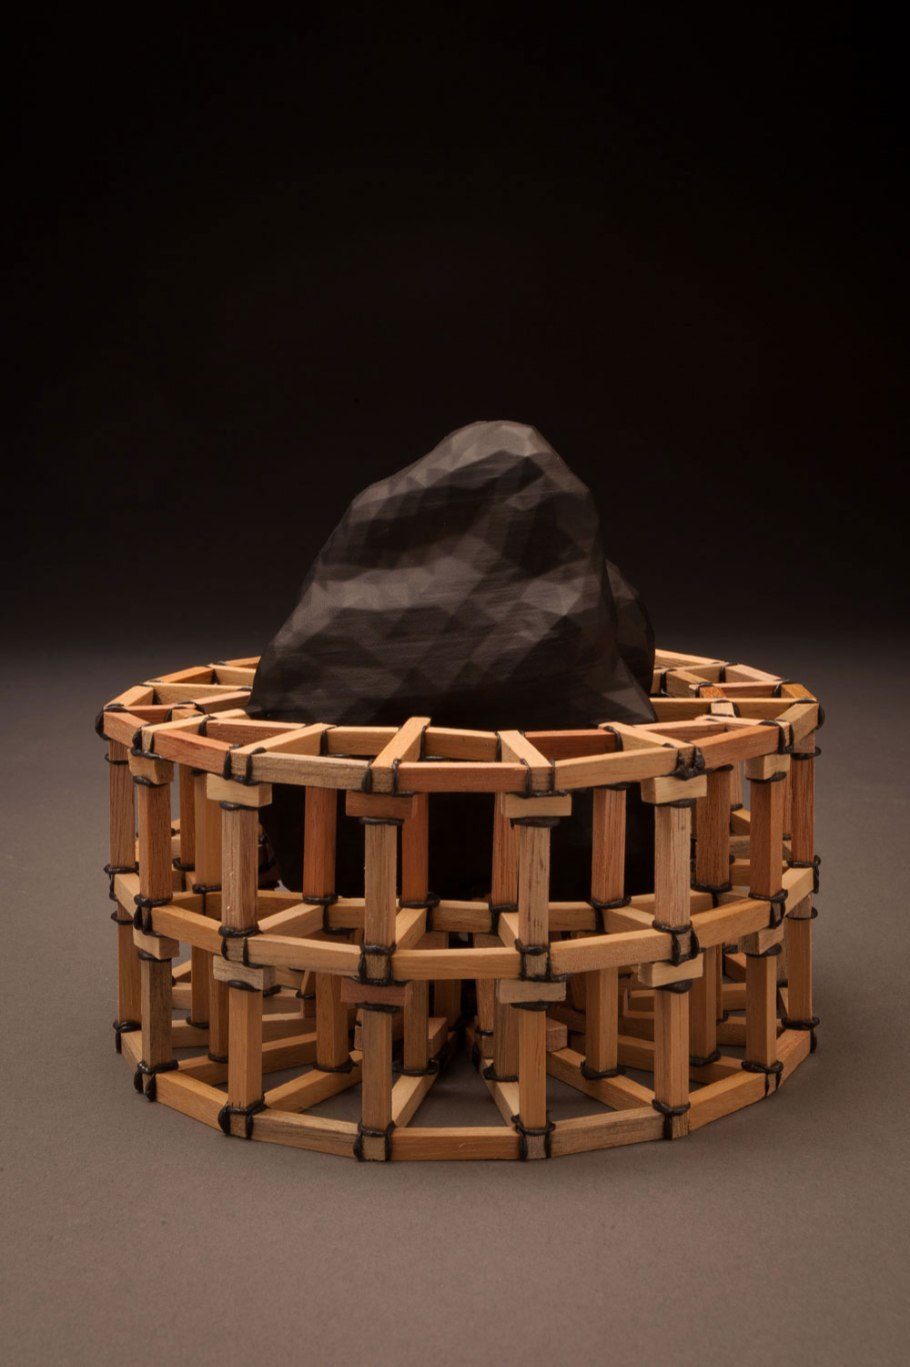 """3D printed asteroid model from NASA scans, ABS plastic, wood, epoxy, 6"""" x 6"""" x 6"""", 2016"""